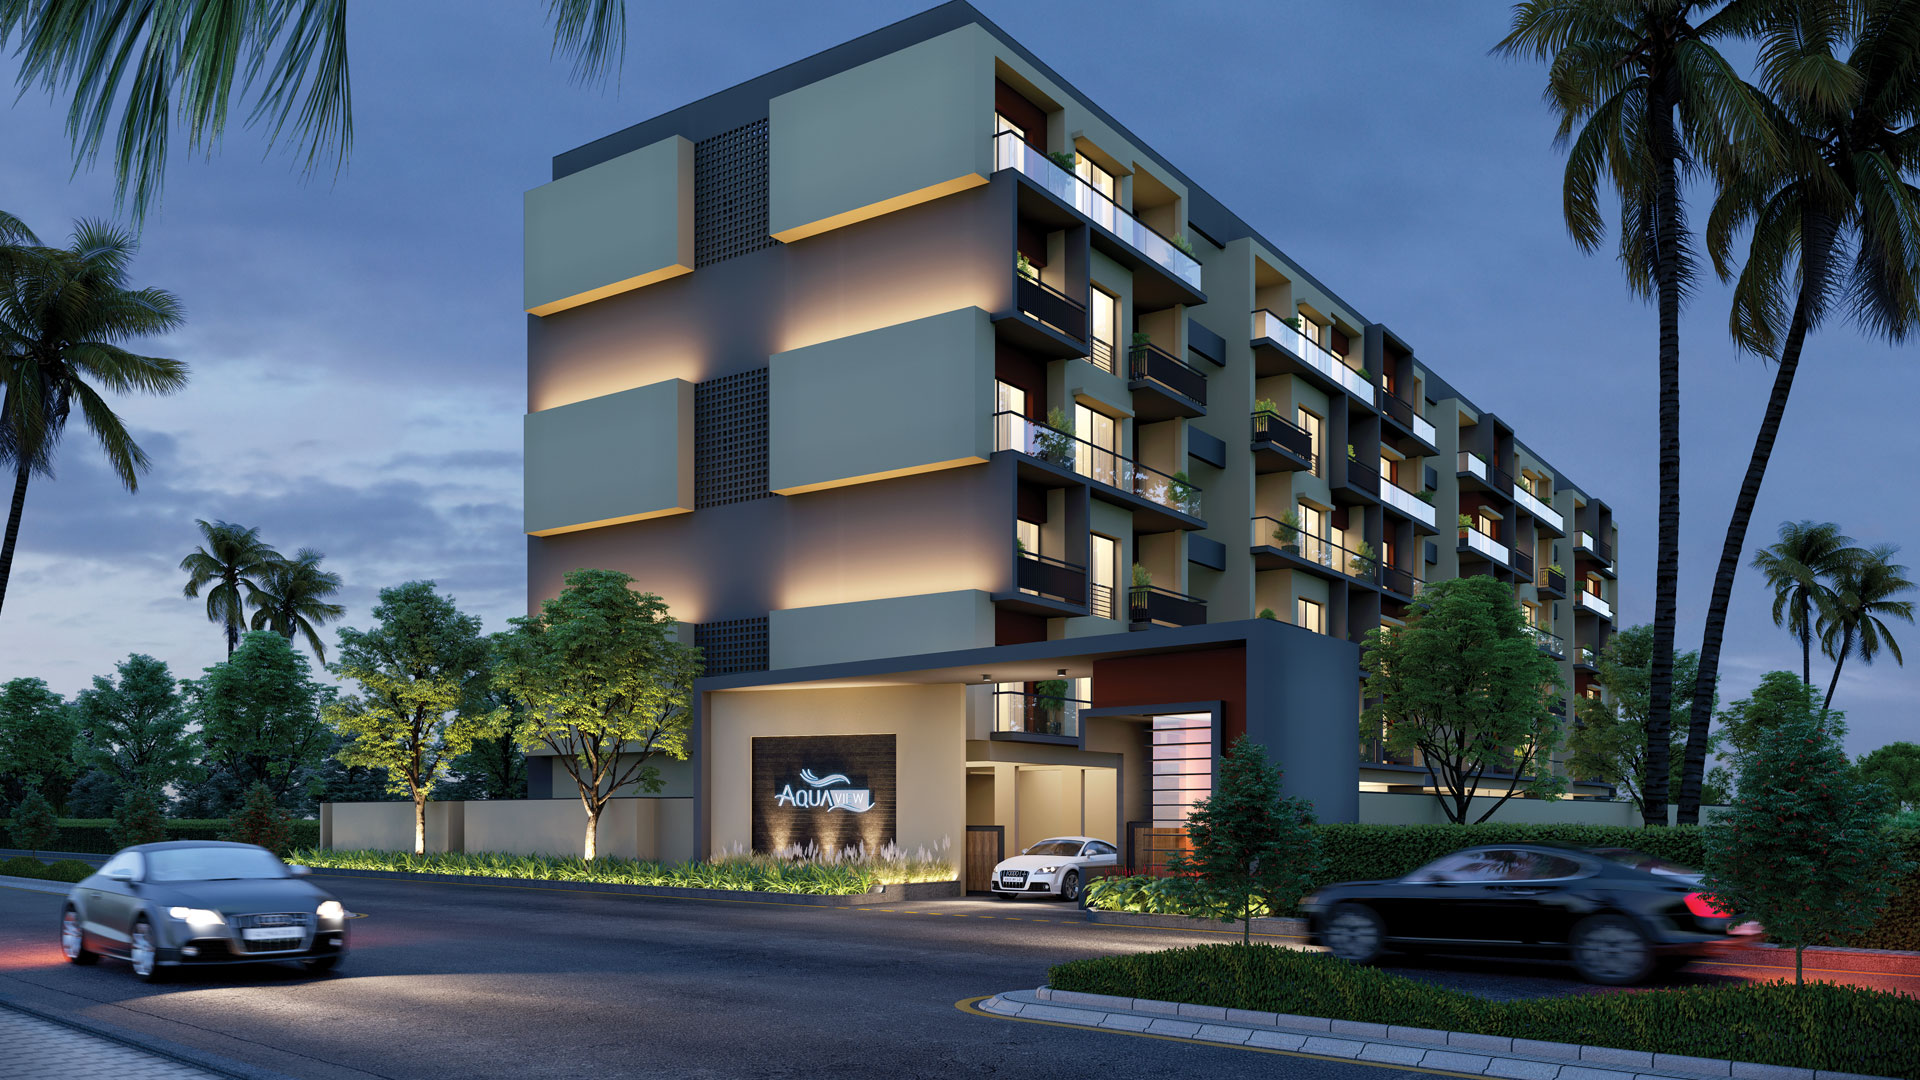 Welcome to Aqua View - A new wave of luxury apartments